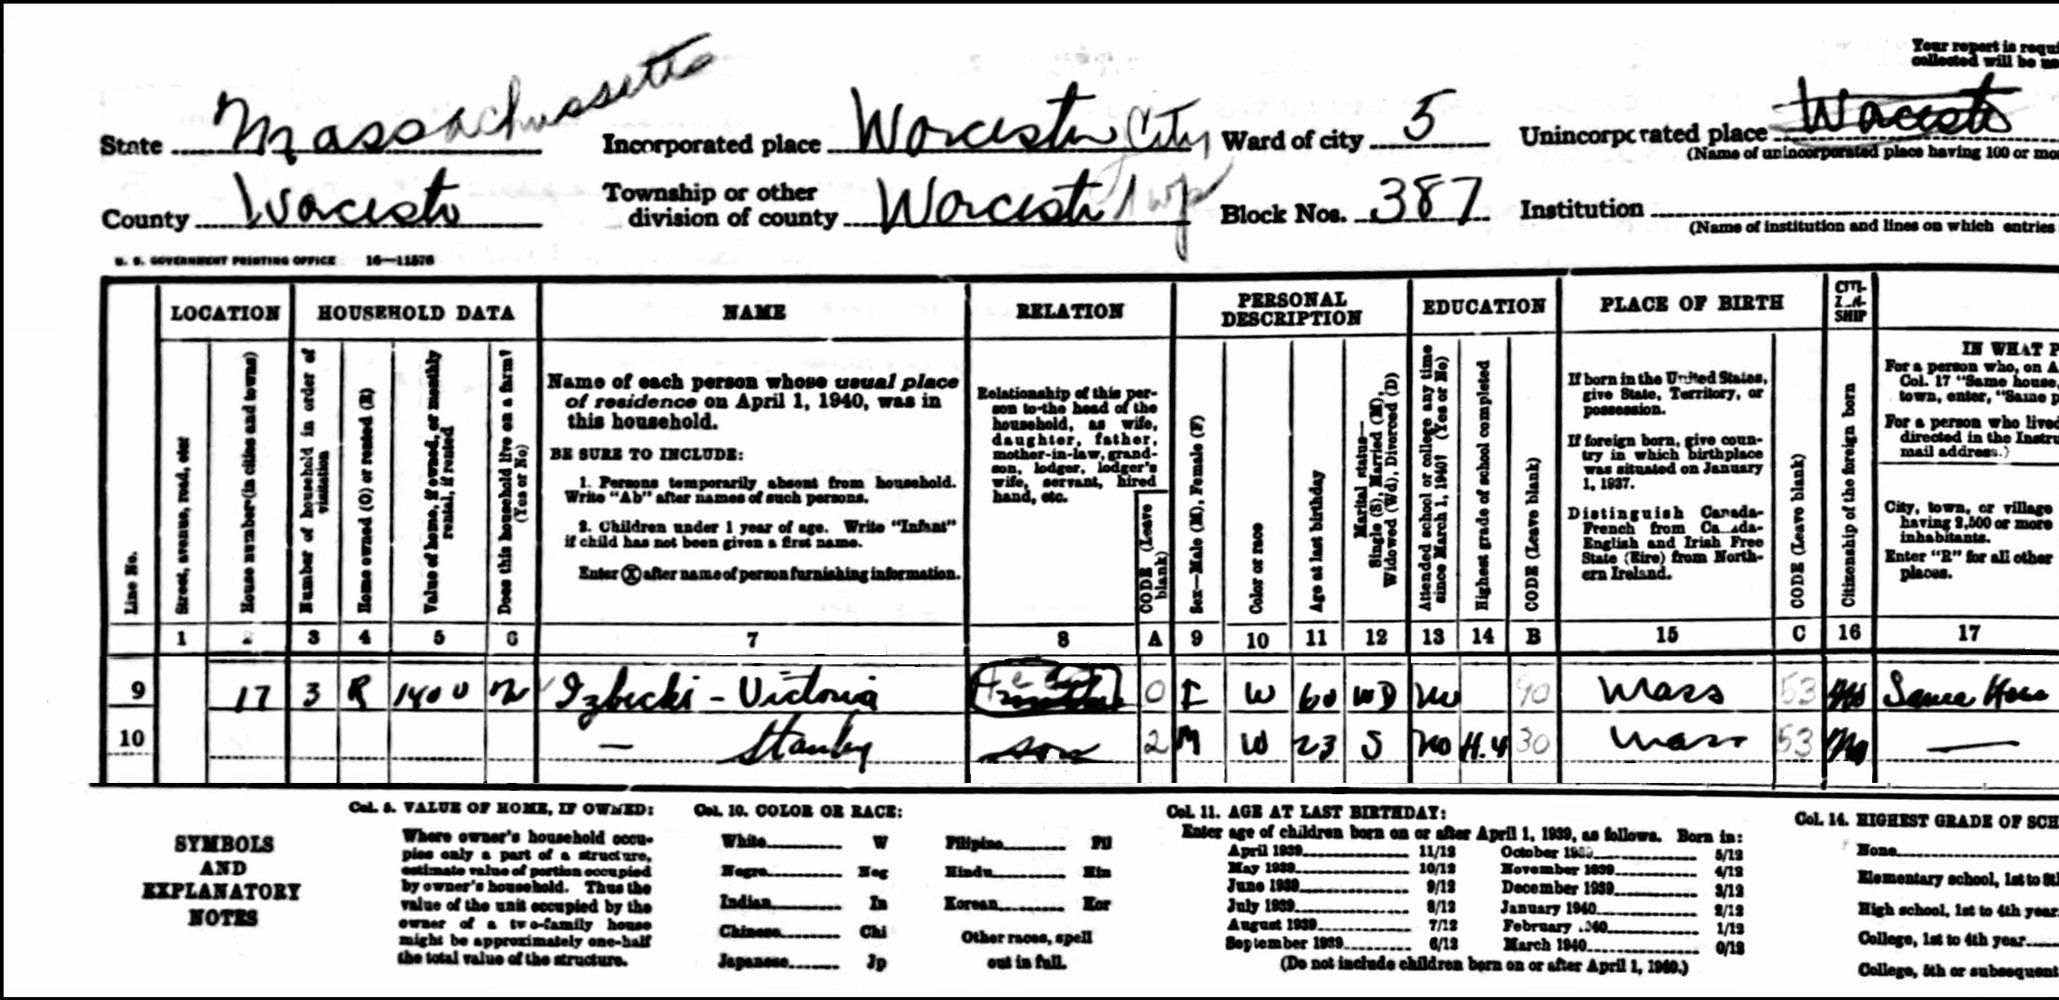 1940 US Federal Census Record for the Victoria Izbicki Family (Left)